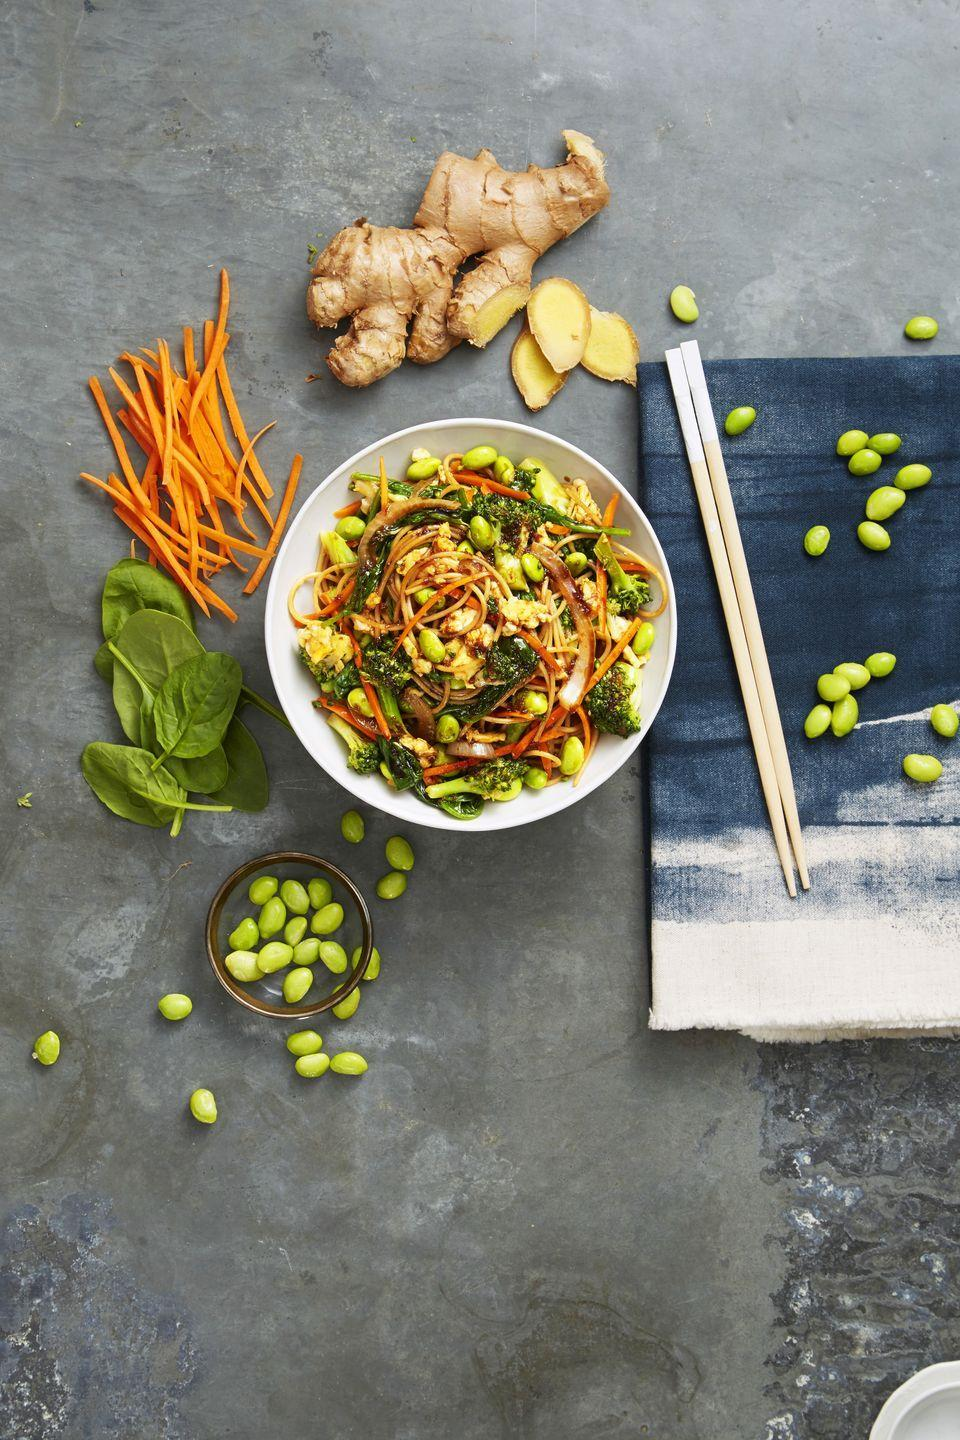 """<p>Sometimes you can't be bothered to cook for longer than 15 minutes. On those days, these noodles are your BFF.</p><p><a href=""""https://www.goodhousekeeping.com/food-recipes/easy/a34238/veggie-lo-mein/"""" rel=""""nofollow noopener"""" target=""""_blank"""" data-ylk=""""slk:Get the recipe for Veggie Lo Mein »"""" class=""""link rapid-noclick-resp""""><em><span class=""""redactor-invisible-space"""">Get the recipe for Veggie Lo Mein »</span> </em></a><br></p>"""